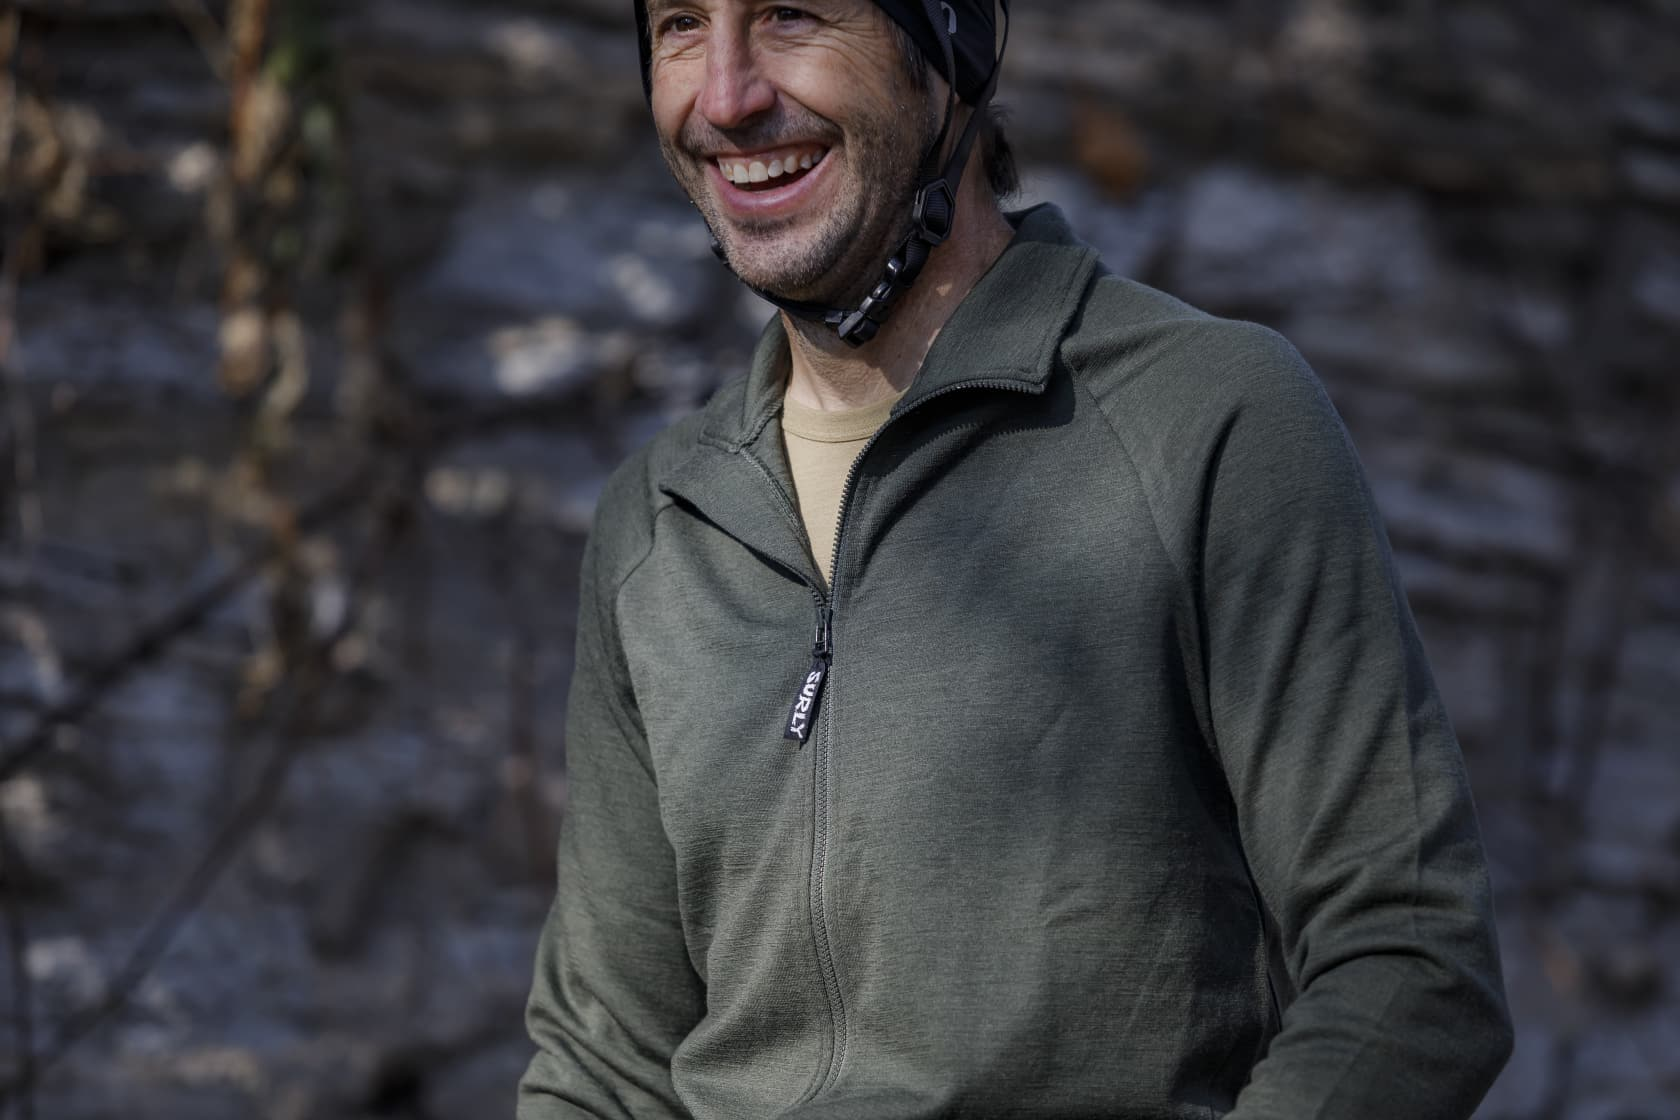 Person wearing a Surly long sleeve bike jersey, olive drab, and helmet in a blurry outdoor woods setting in background